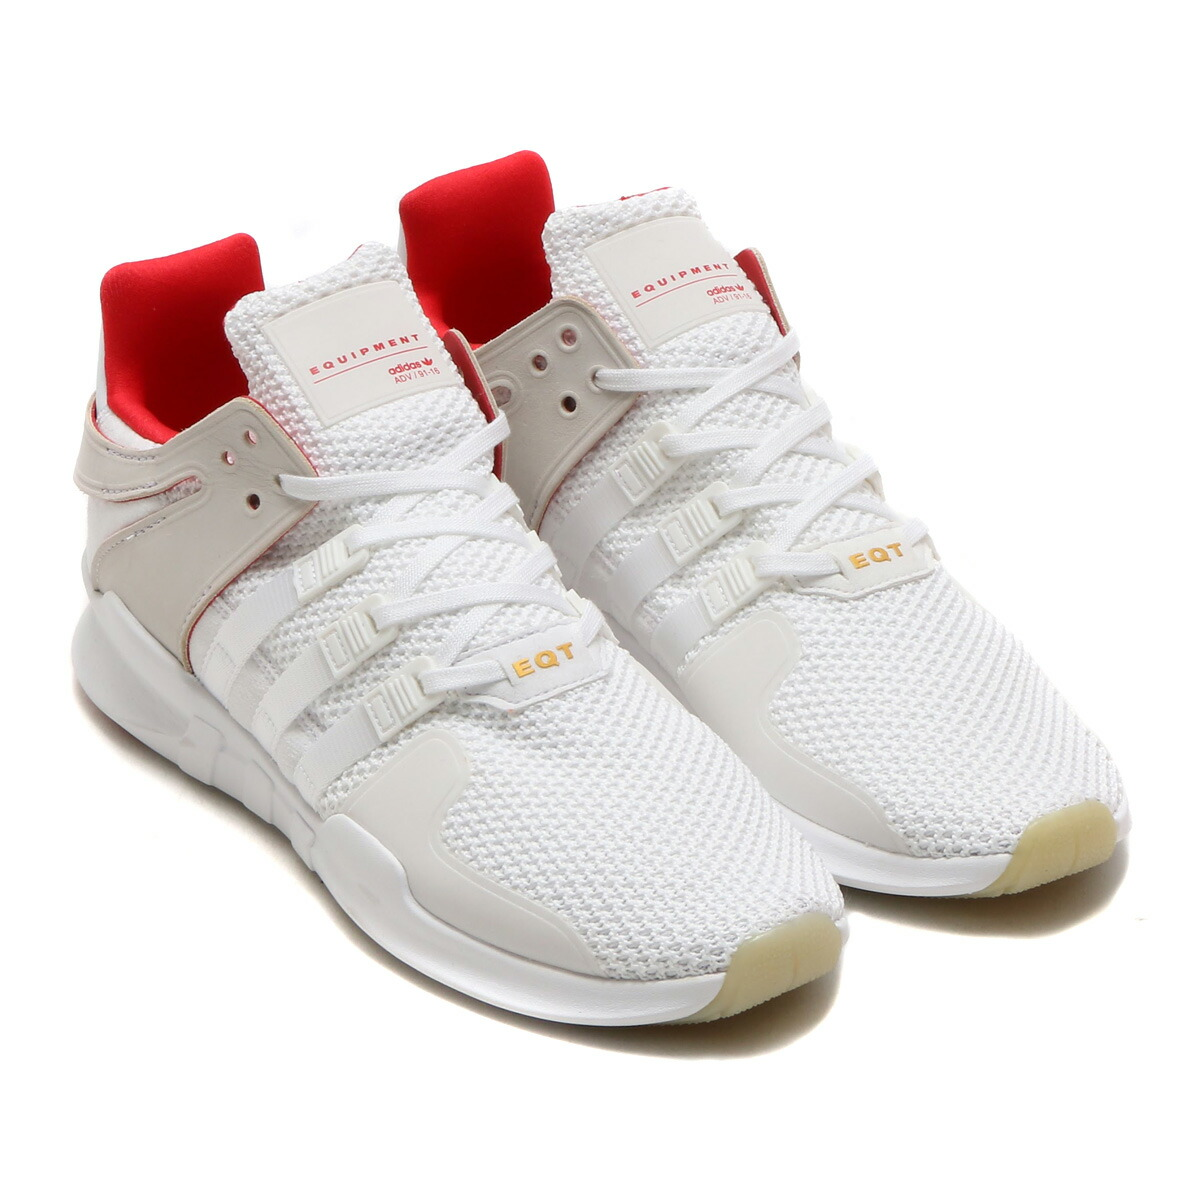 promo code a6886 1f50a The heritage which Adidas is proud of revives in a new figure.